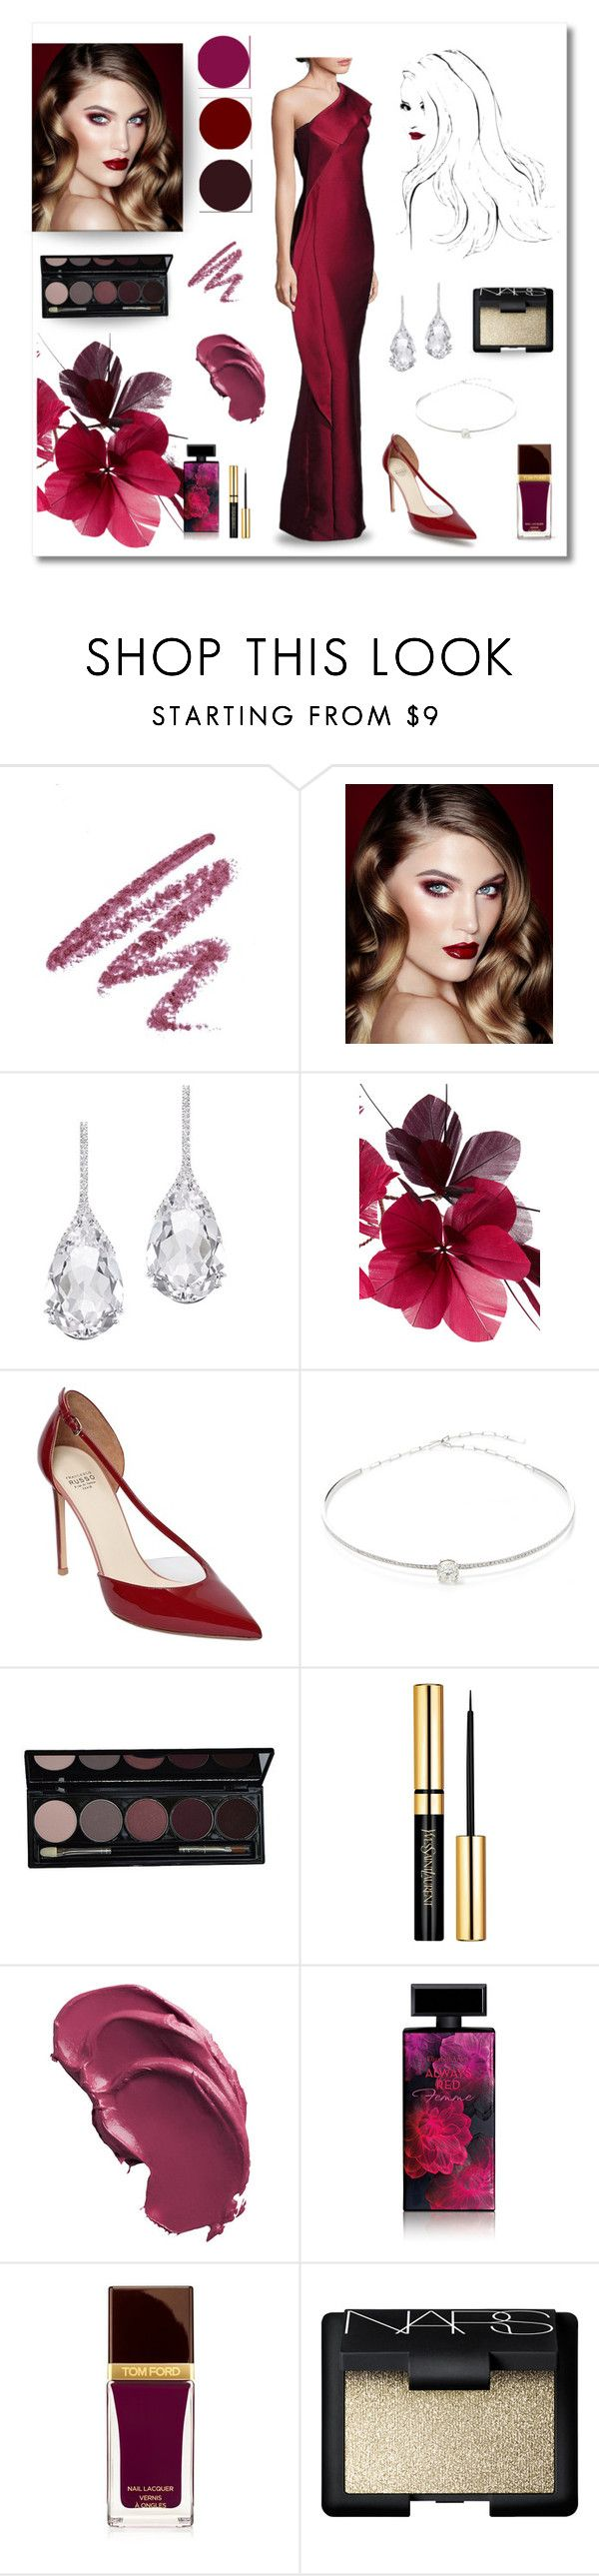 """Red Carpet look"" by magnolialily-prints ❤ liked on Polyvore featuring Charlotte Tilbury, Plukka, Valentino, Francesco Russo, Jack Vartanian, Elizabeth Arden, Tom Ford, NARS Cosmetics and ML Monique Lhuillier"